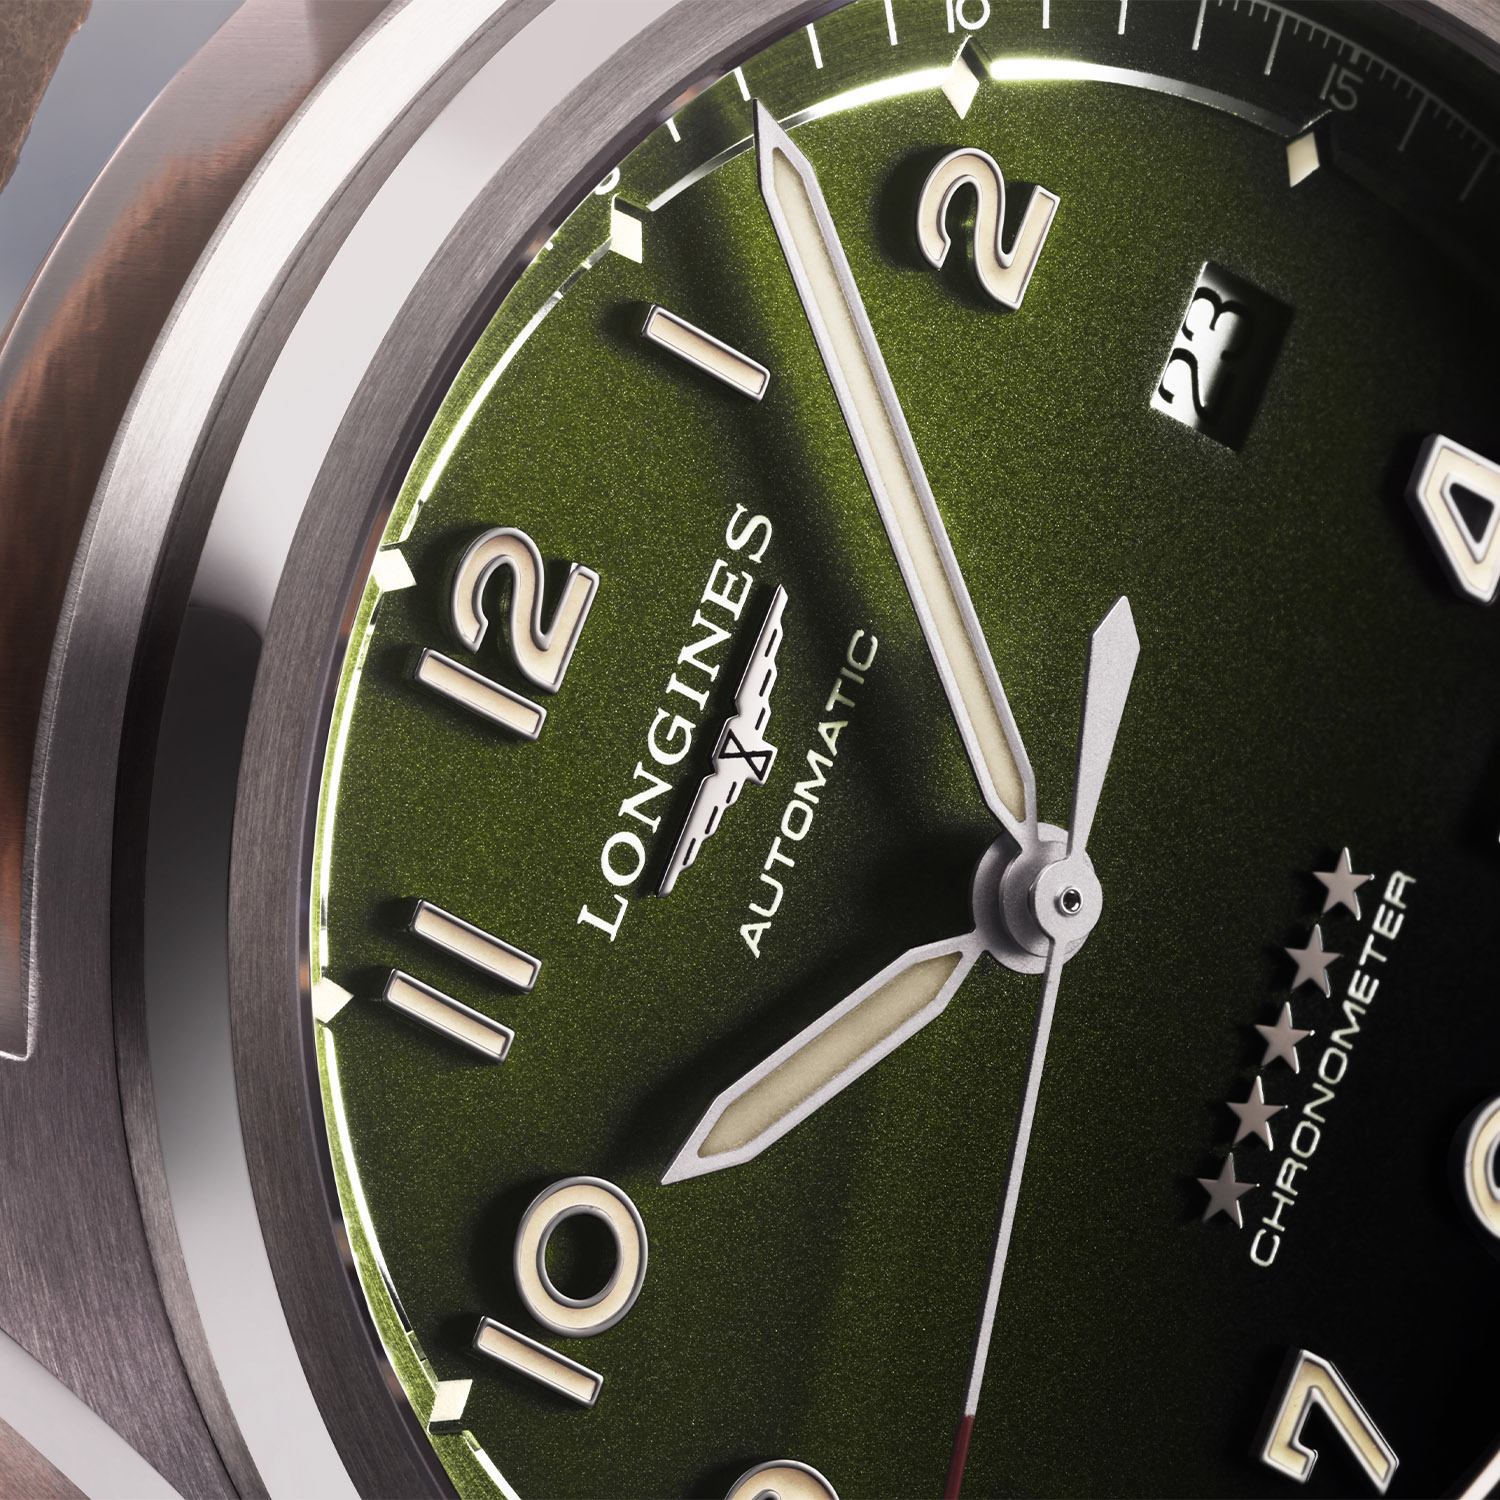 Longines steps up their customer care with an increased five year warranty